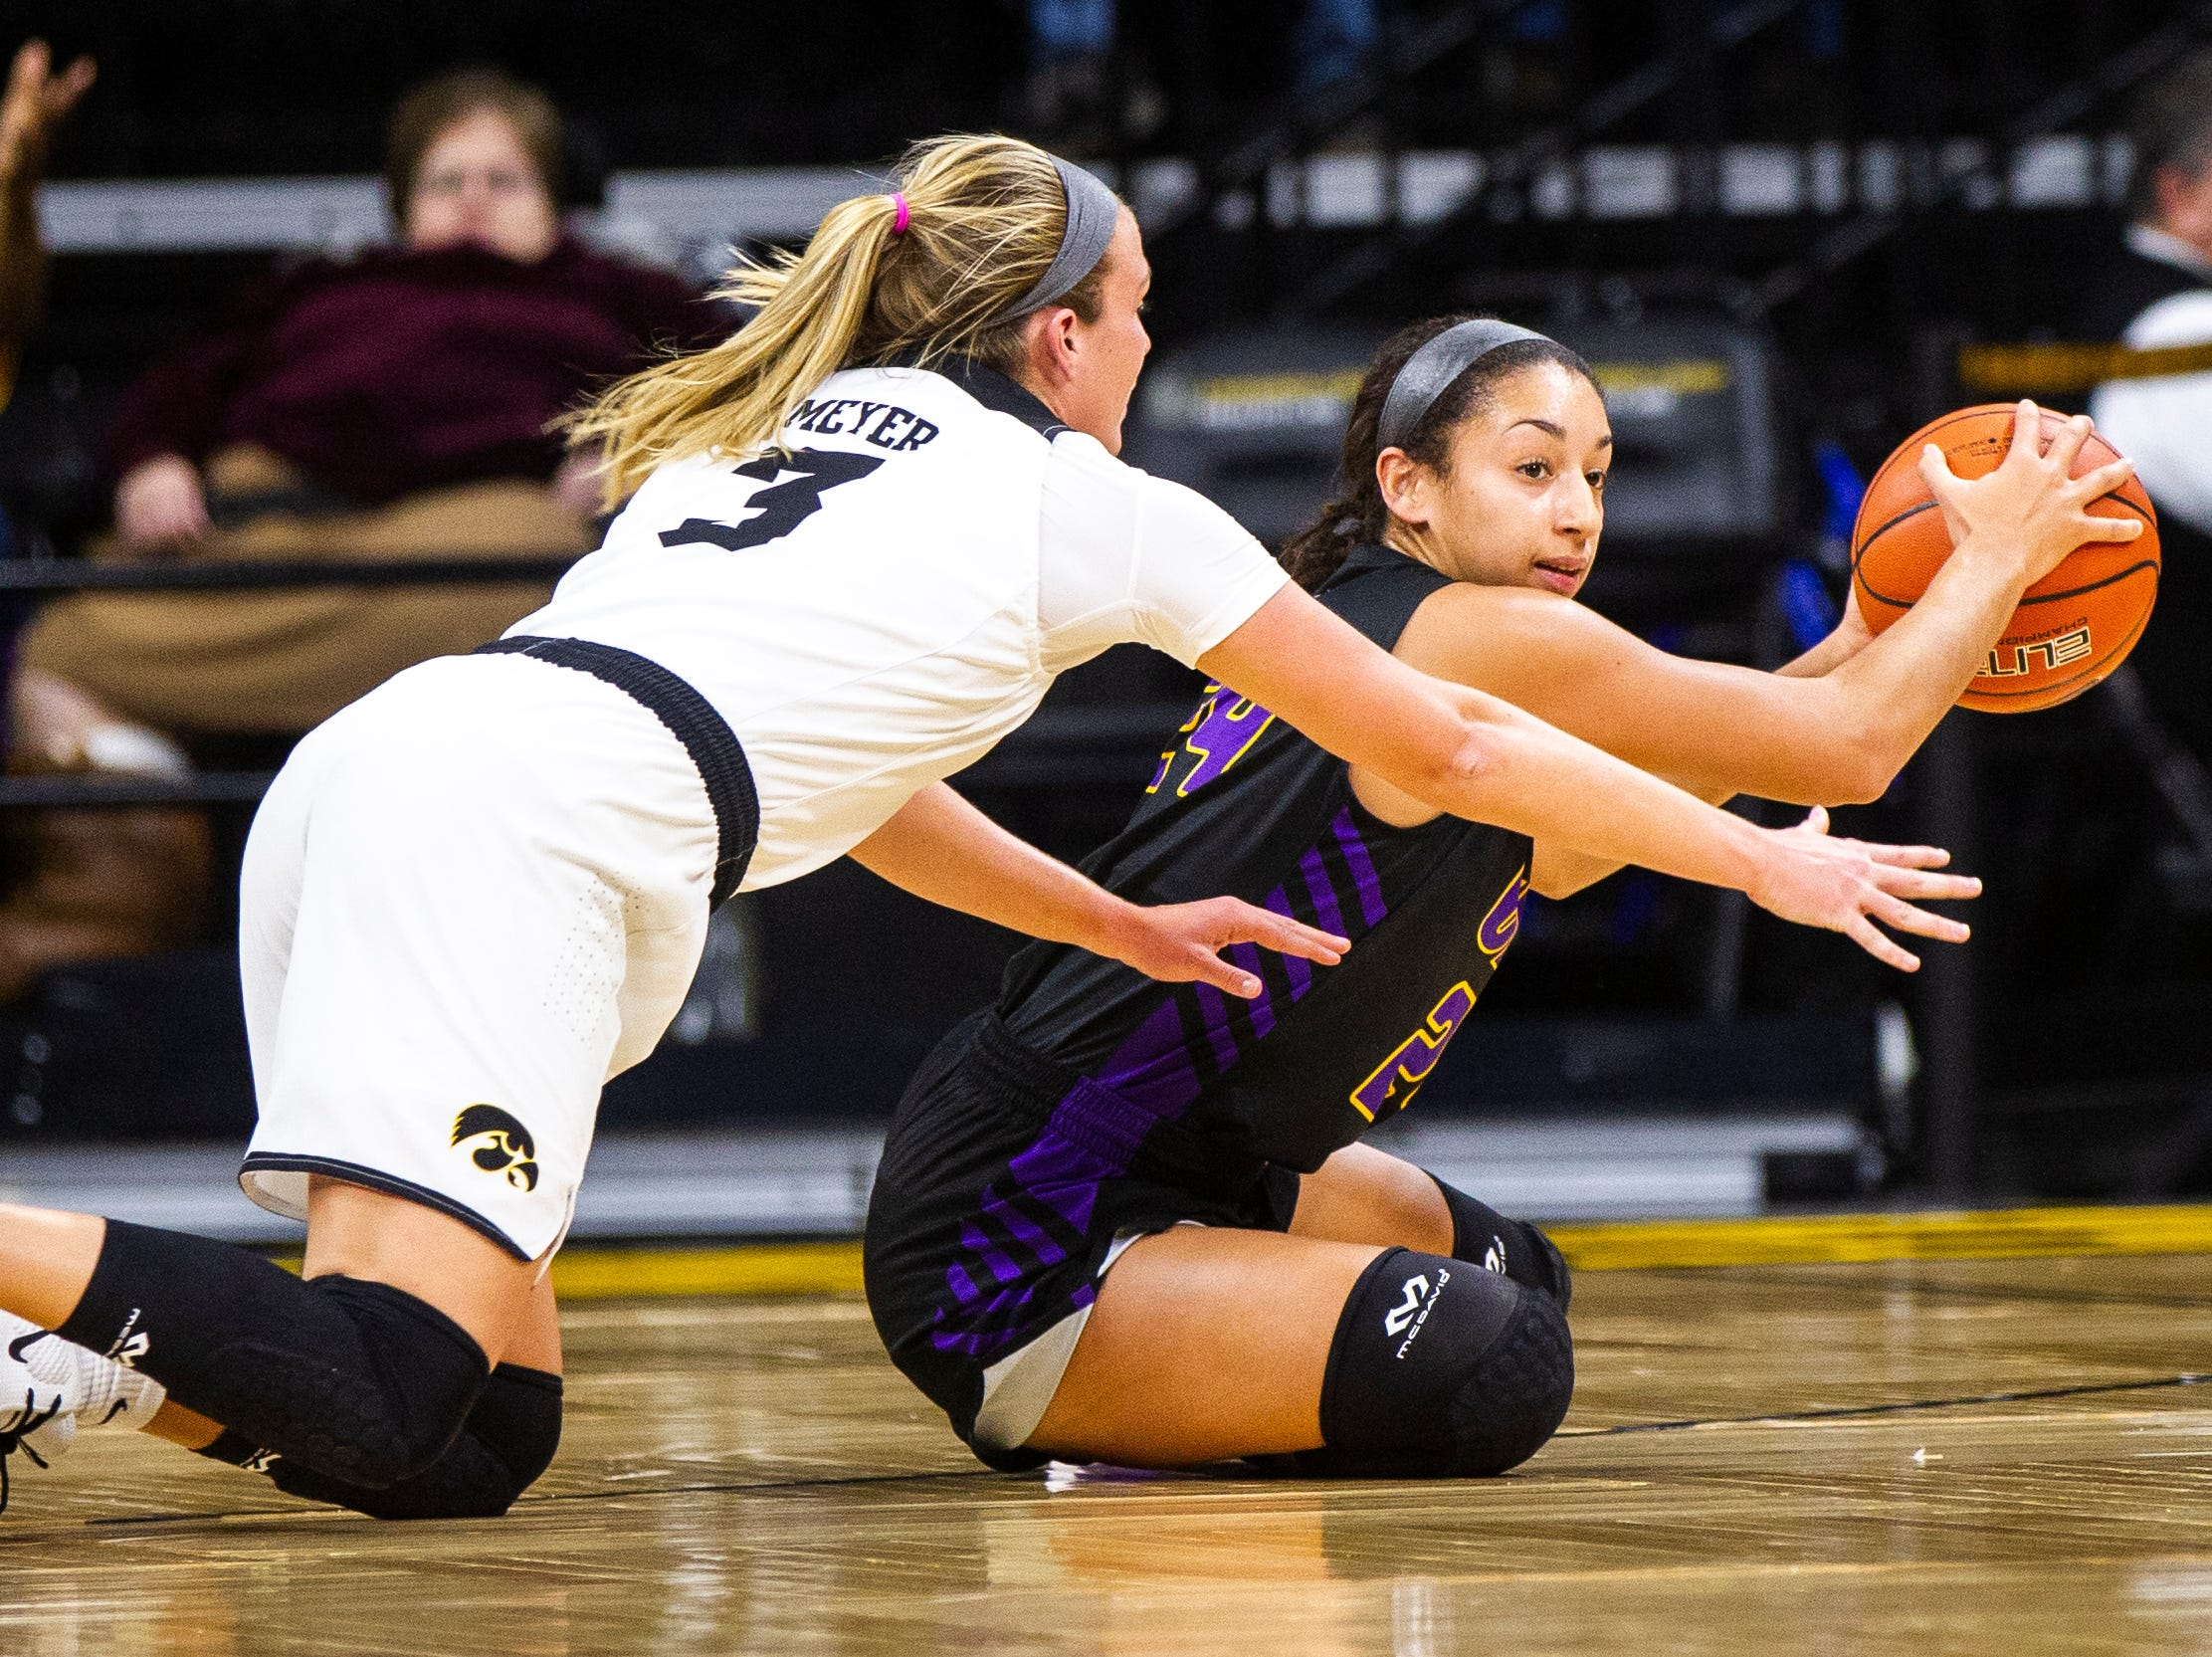 Northern Iowa guard Mikaela Morgan (24) attempts to recover a loose ball while Iowa guard Makenzie Meyer (3) dives in during a NCAA women's basketball game on Sunday, Dec. 16, 2018, at Carver-Hawkeye Arena in Iowa City.